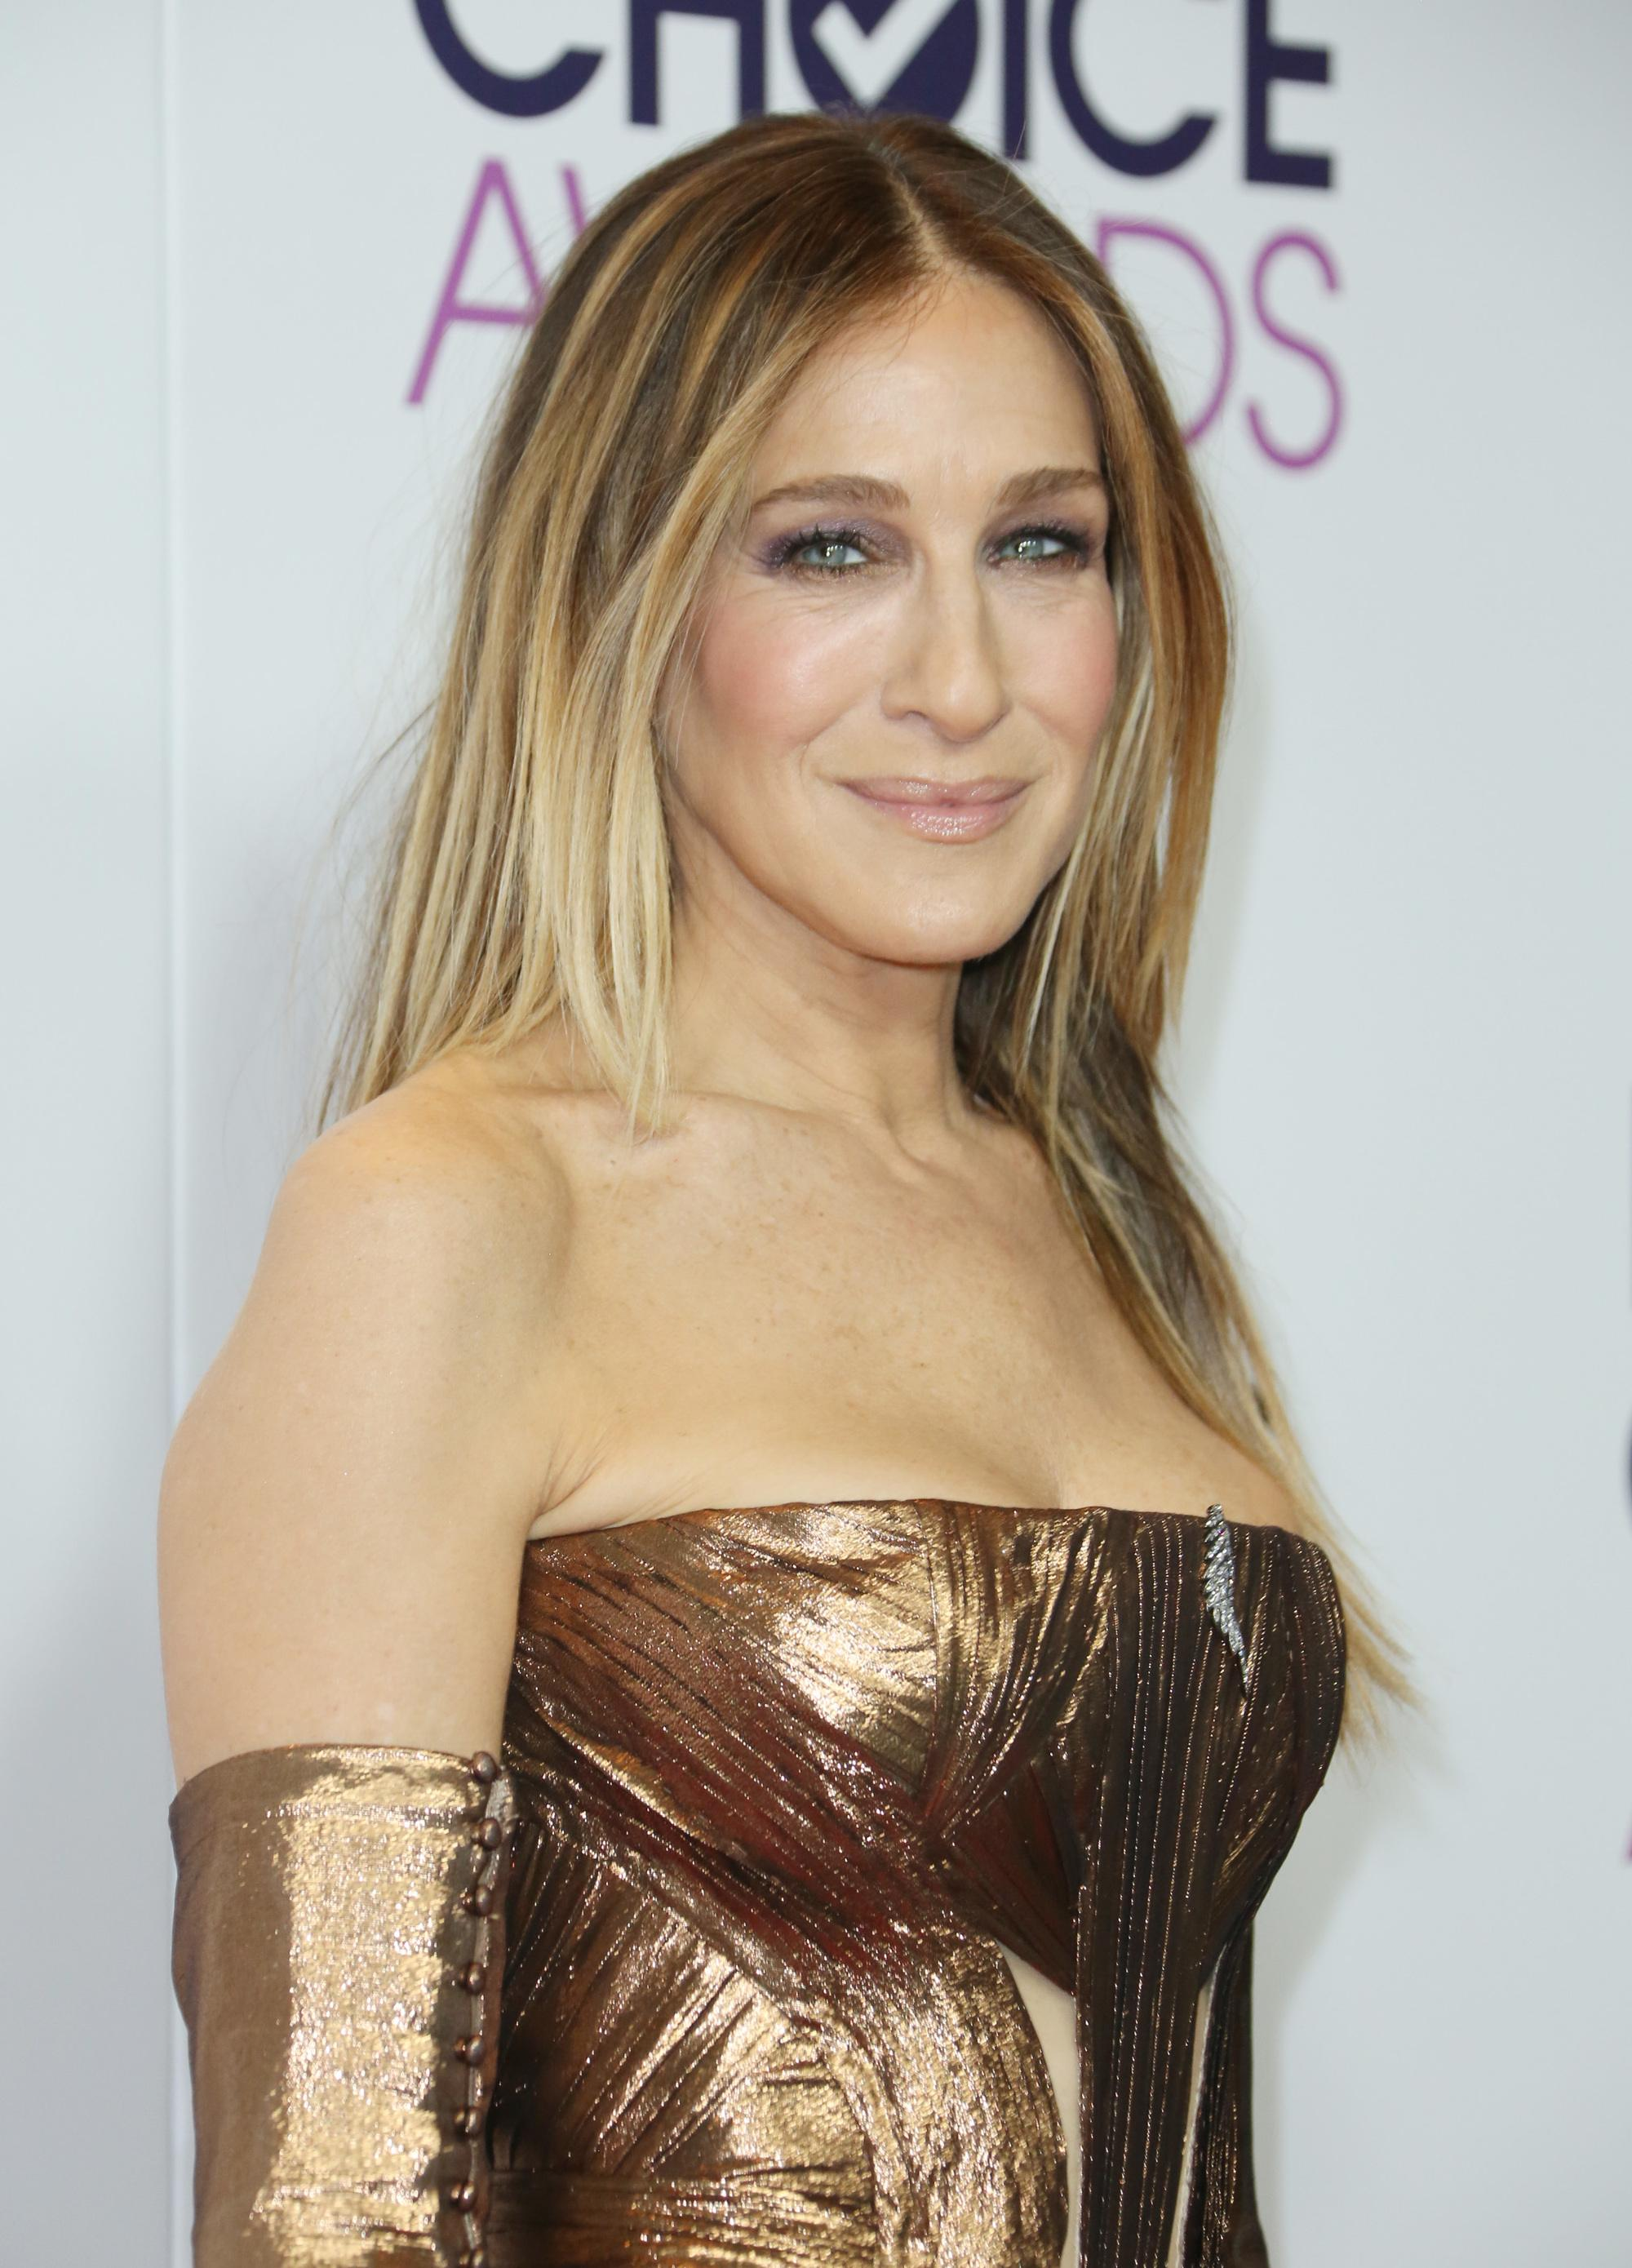 Sarah Jessica Parker with long poker straight blonde hair with highlights at industry red carpet event wearing strapless bronze dress and long gloves